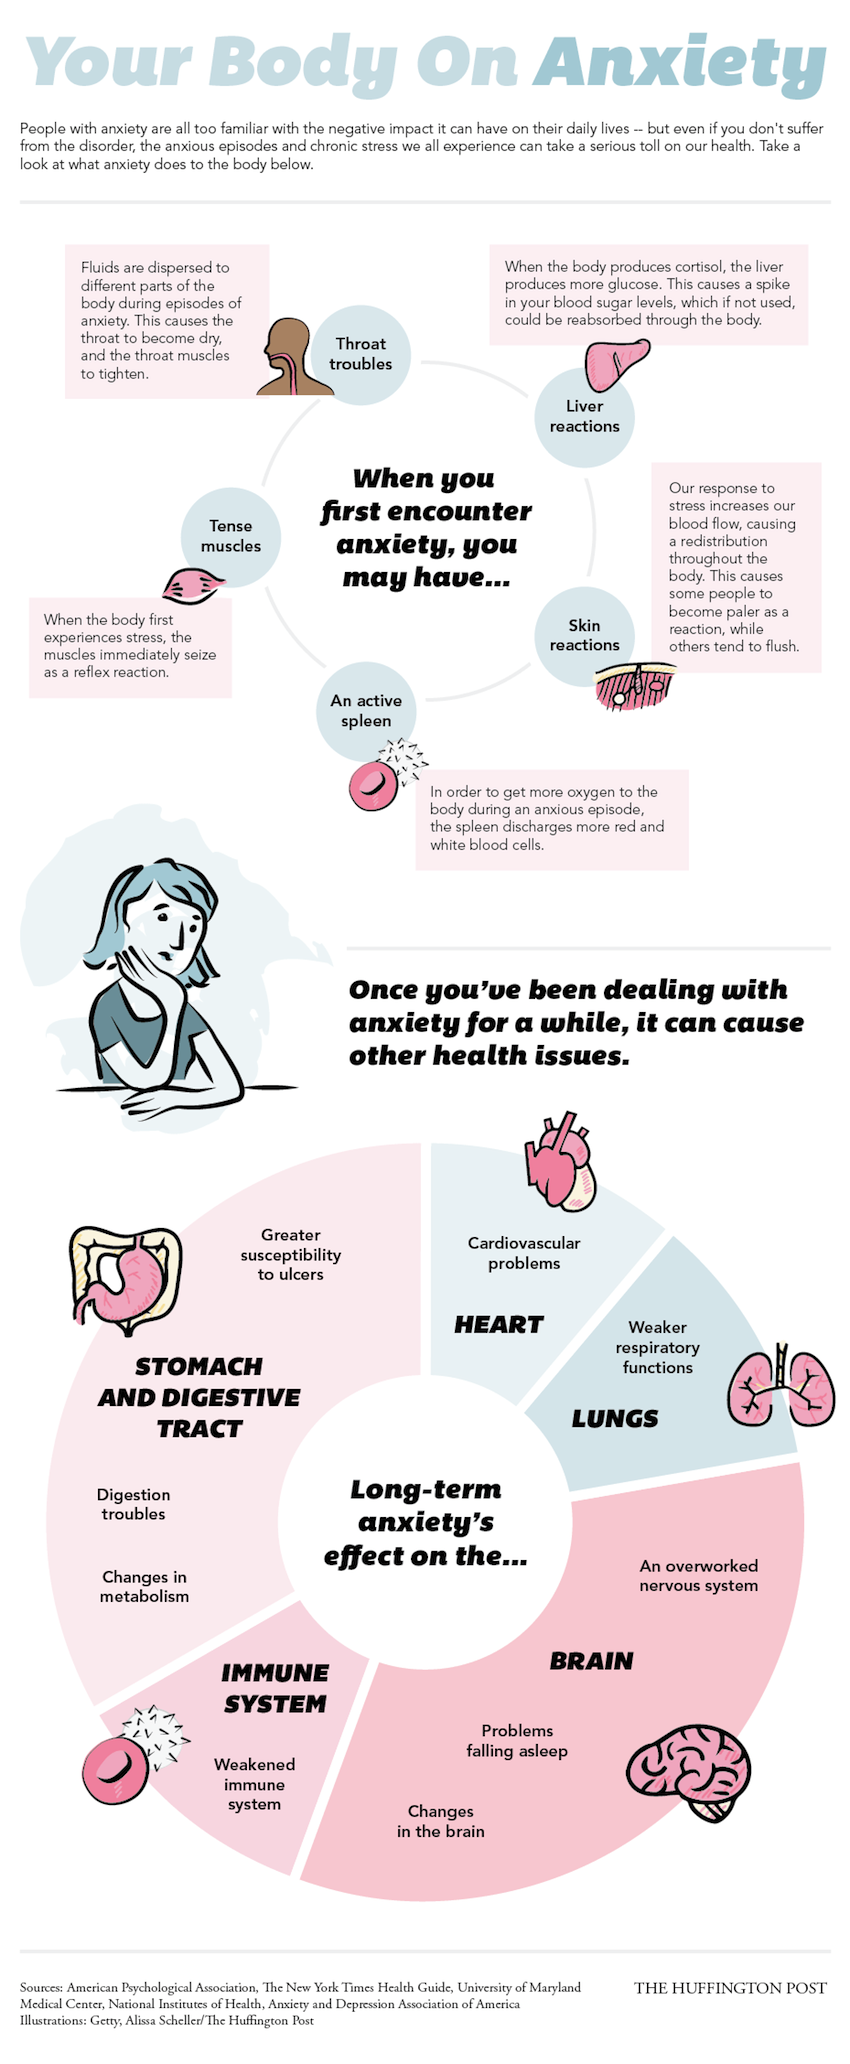 AnxietyInfographic-850x2064